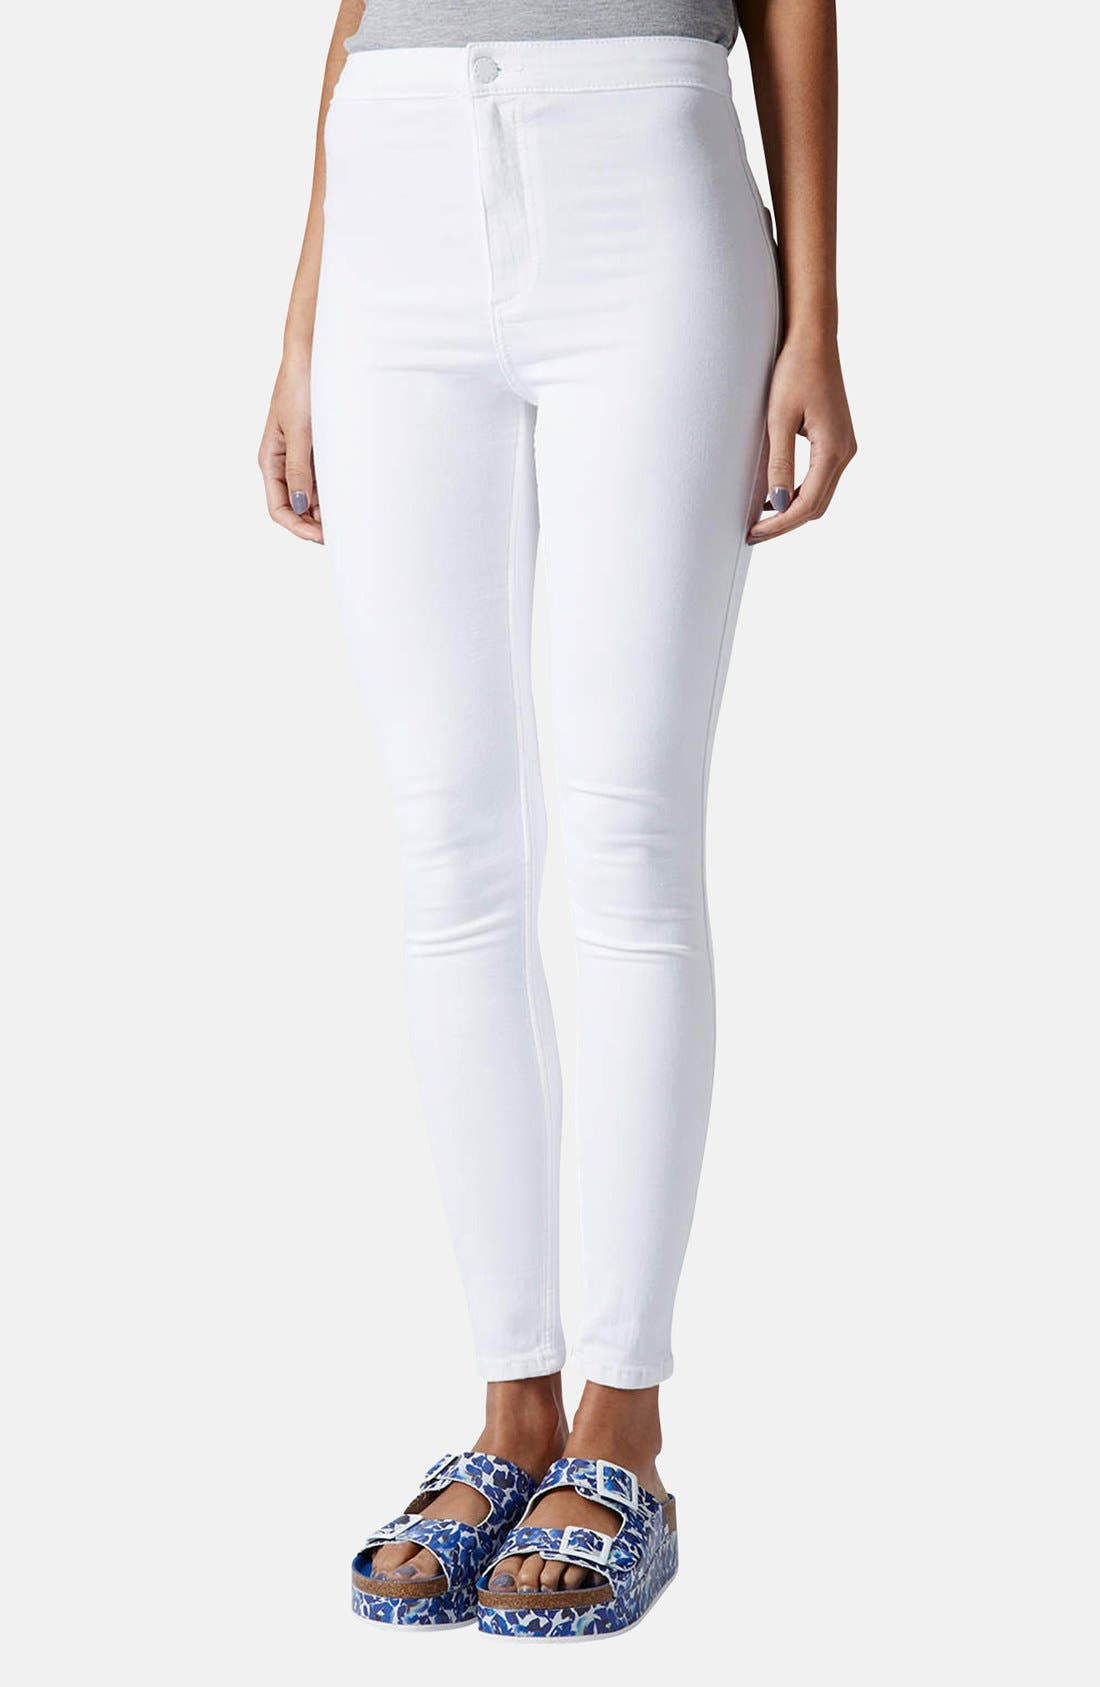 Alternate Image 1 Selected - Topshop Moto 'Joni' High Rise Skinny Jeans (Regular & Long)